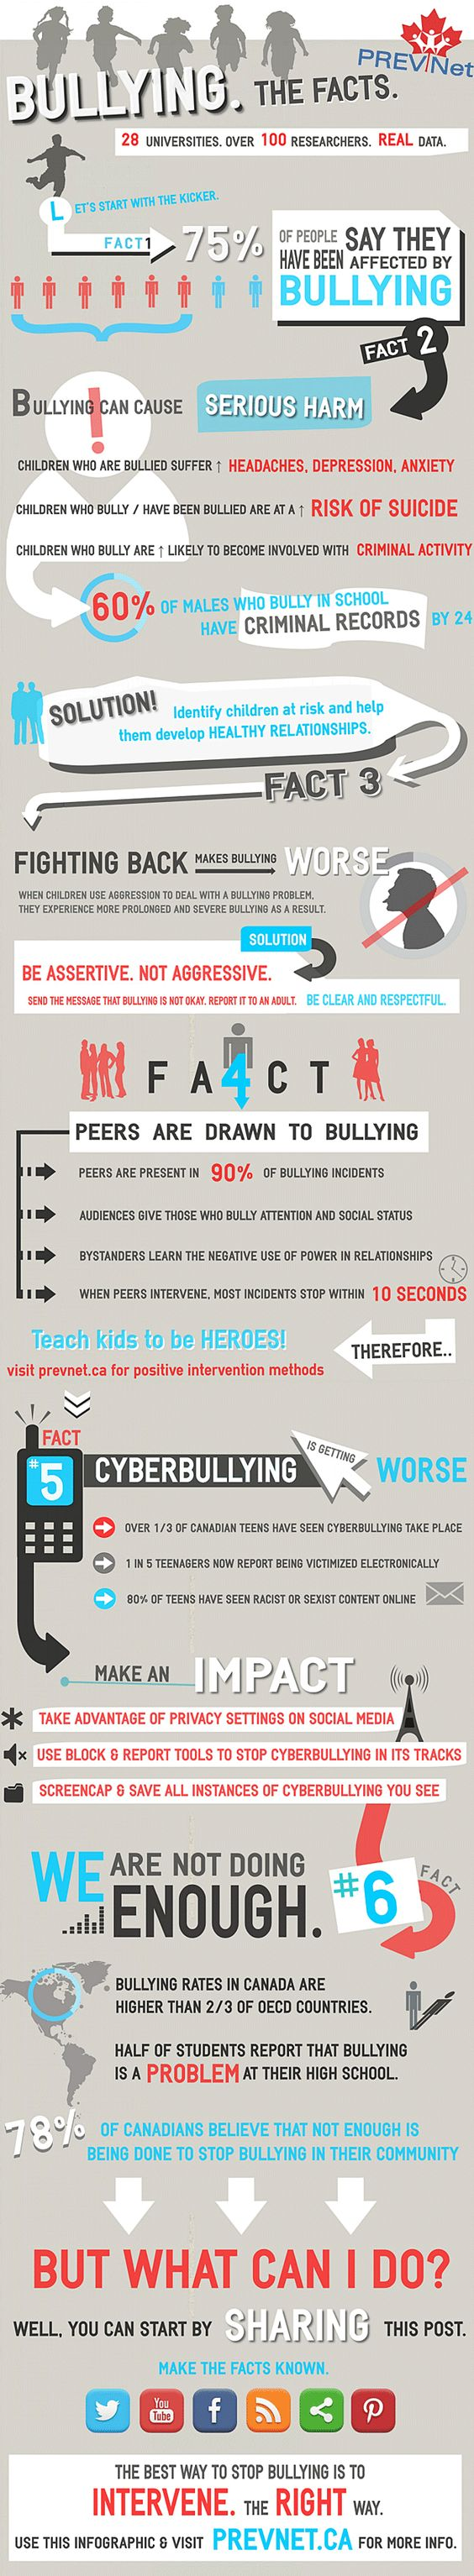 PREVNet's Bullying. The Facts information graphic: